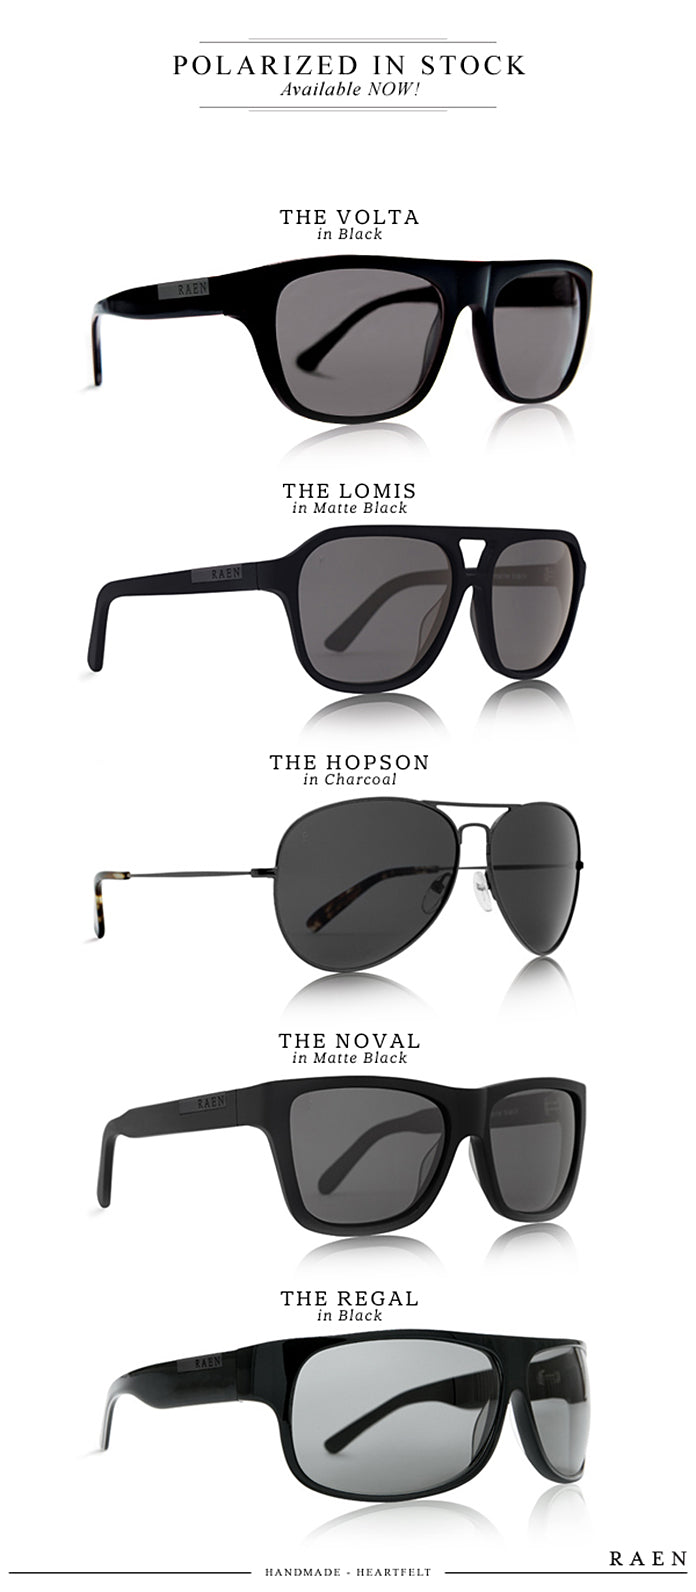 Wear Protection: RAEN Polarized